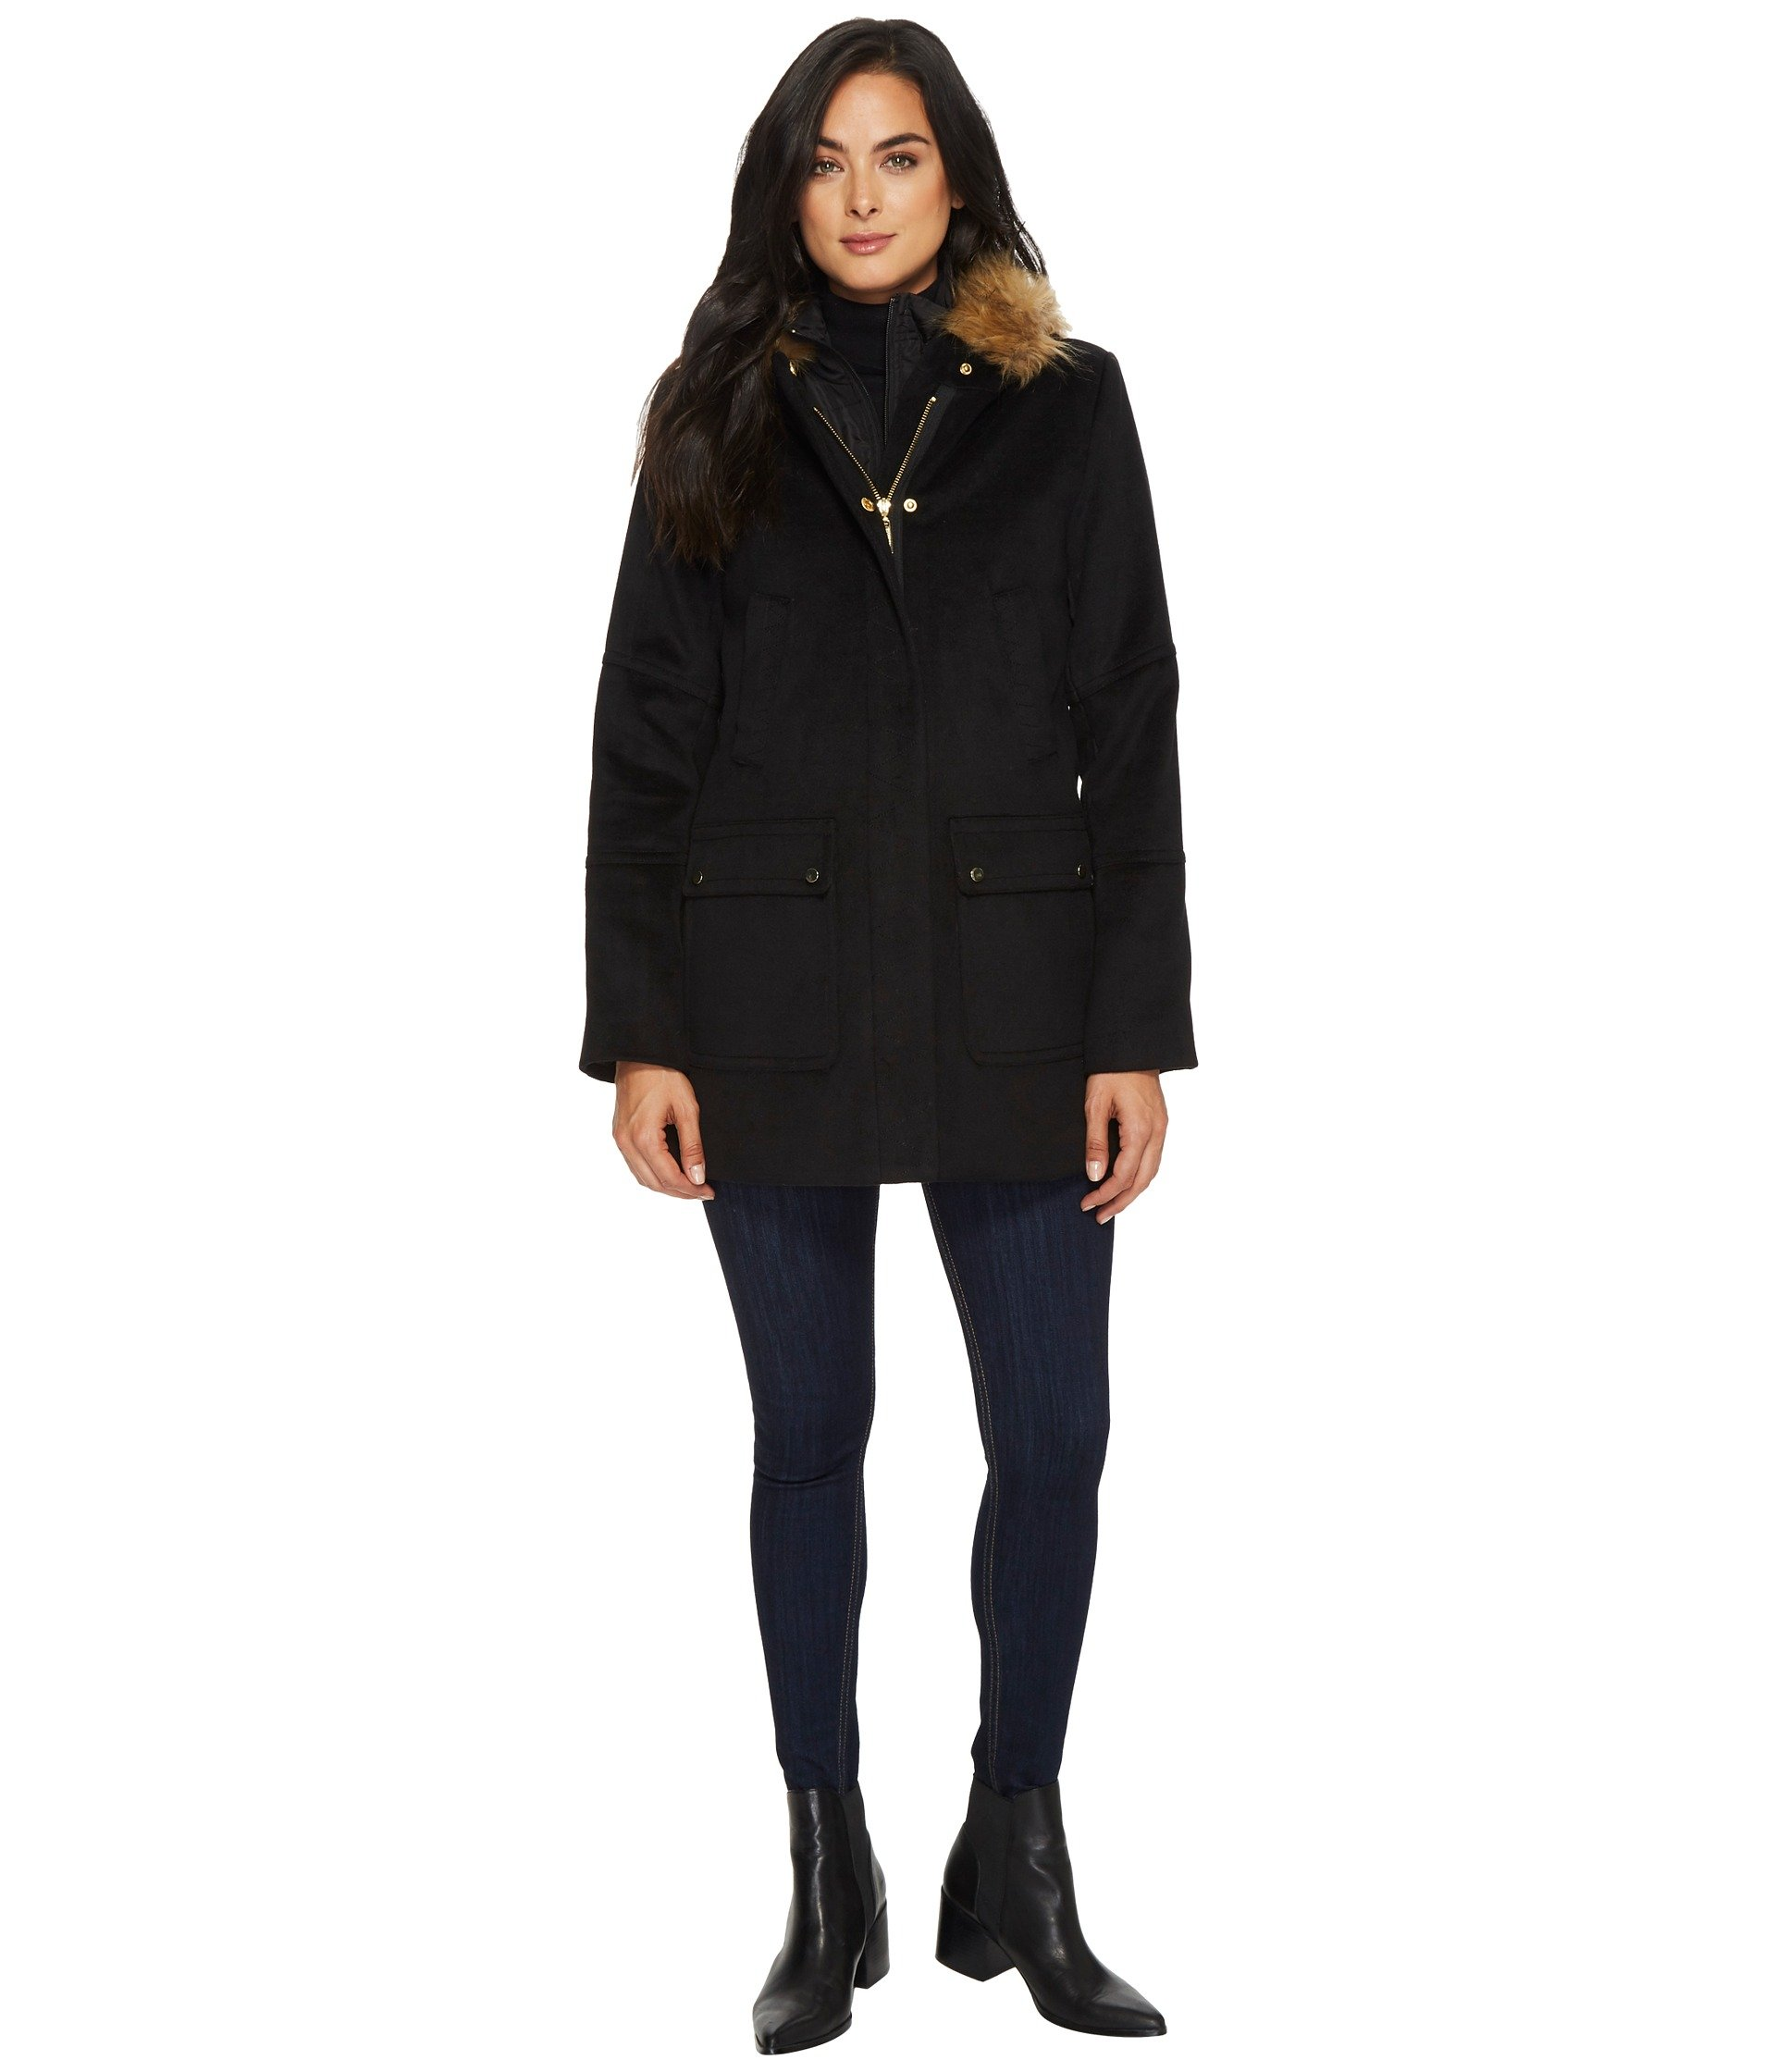 ELLEN TRACY Belted Down With Faux Fur Collar, Black